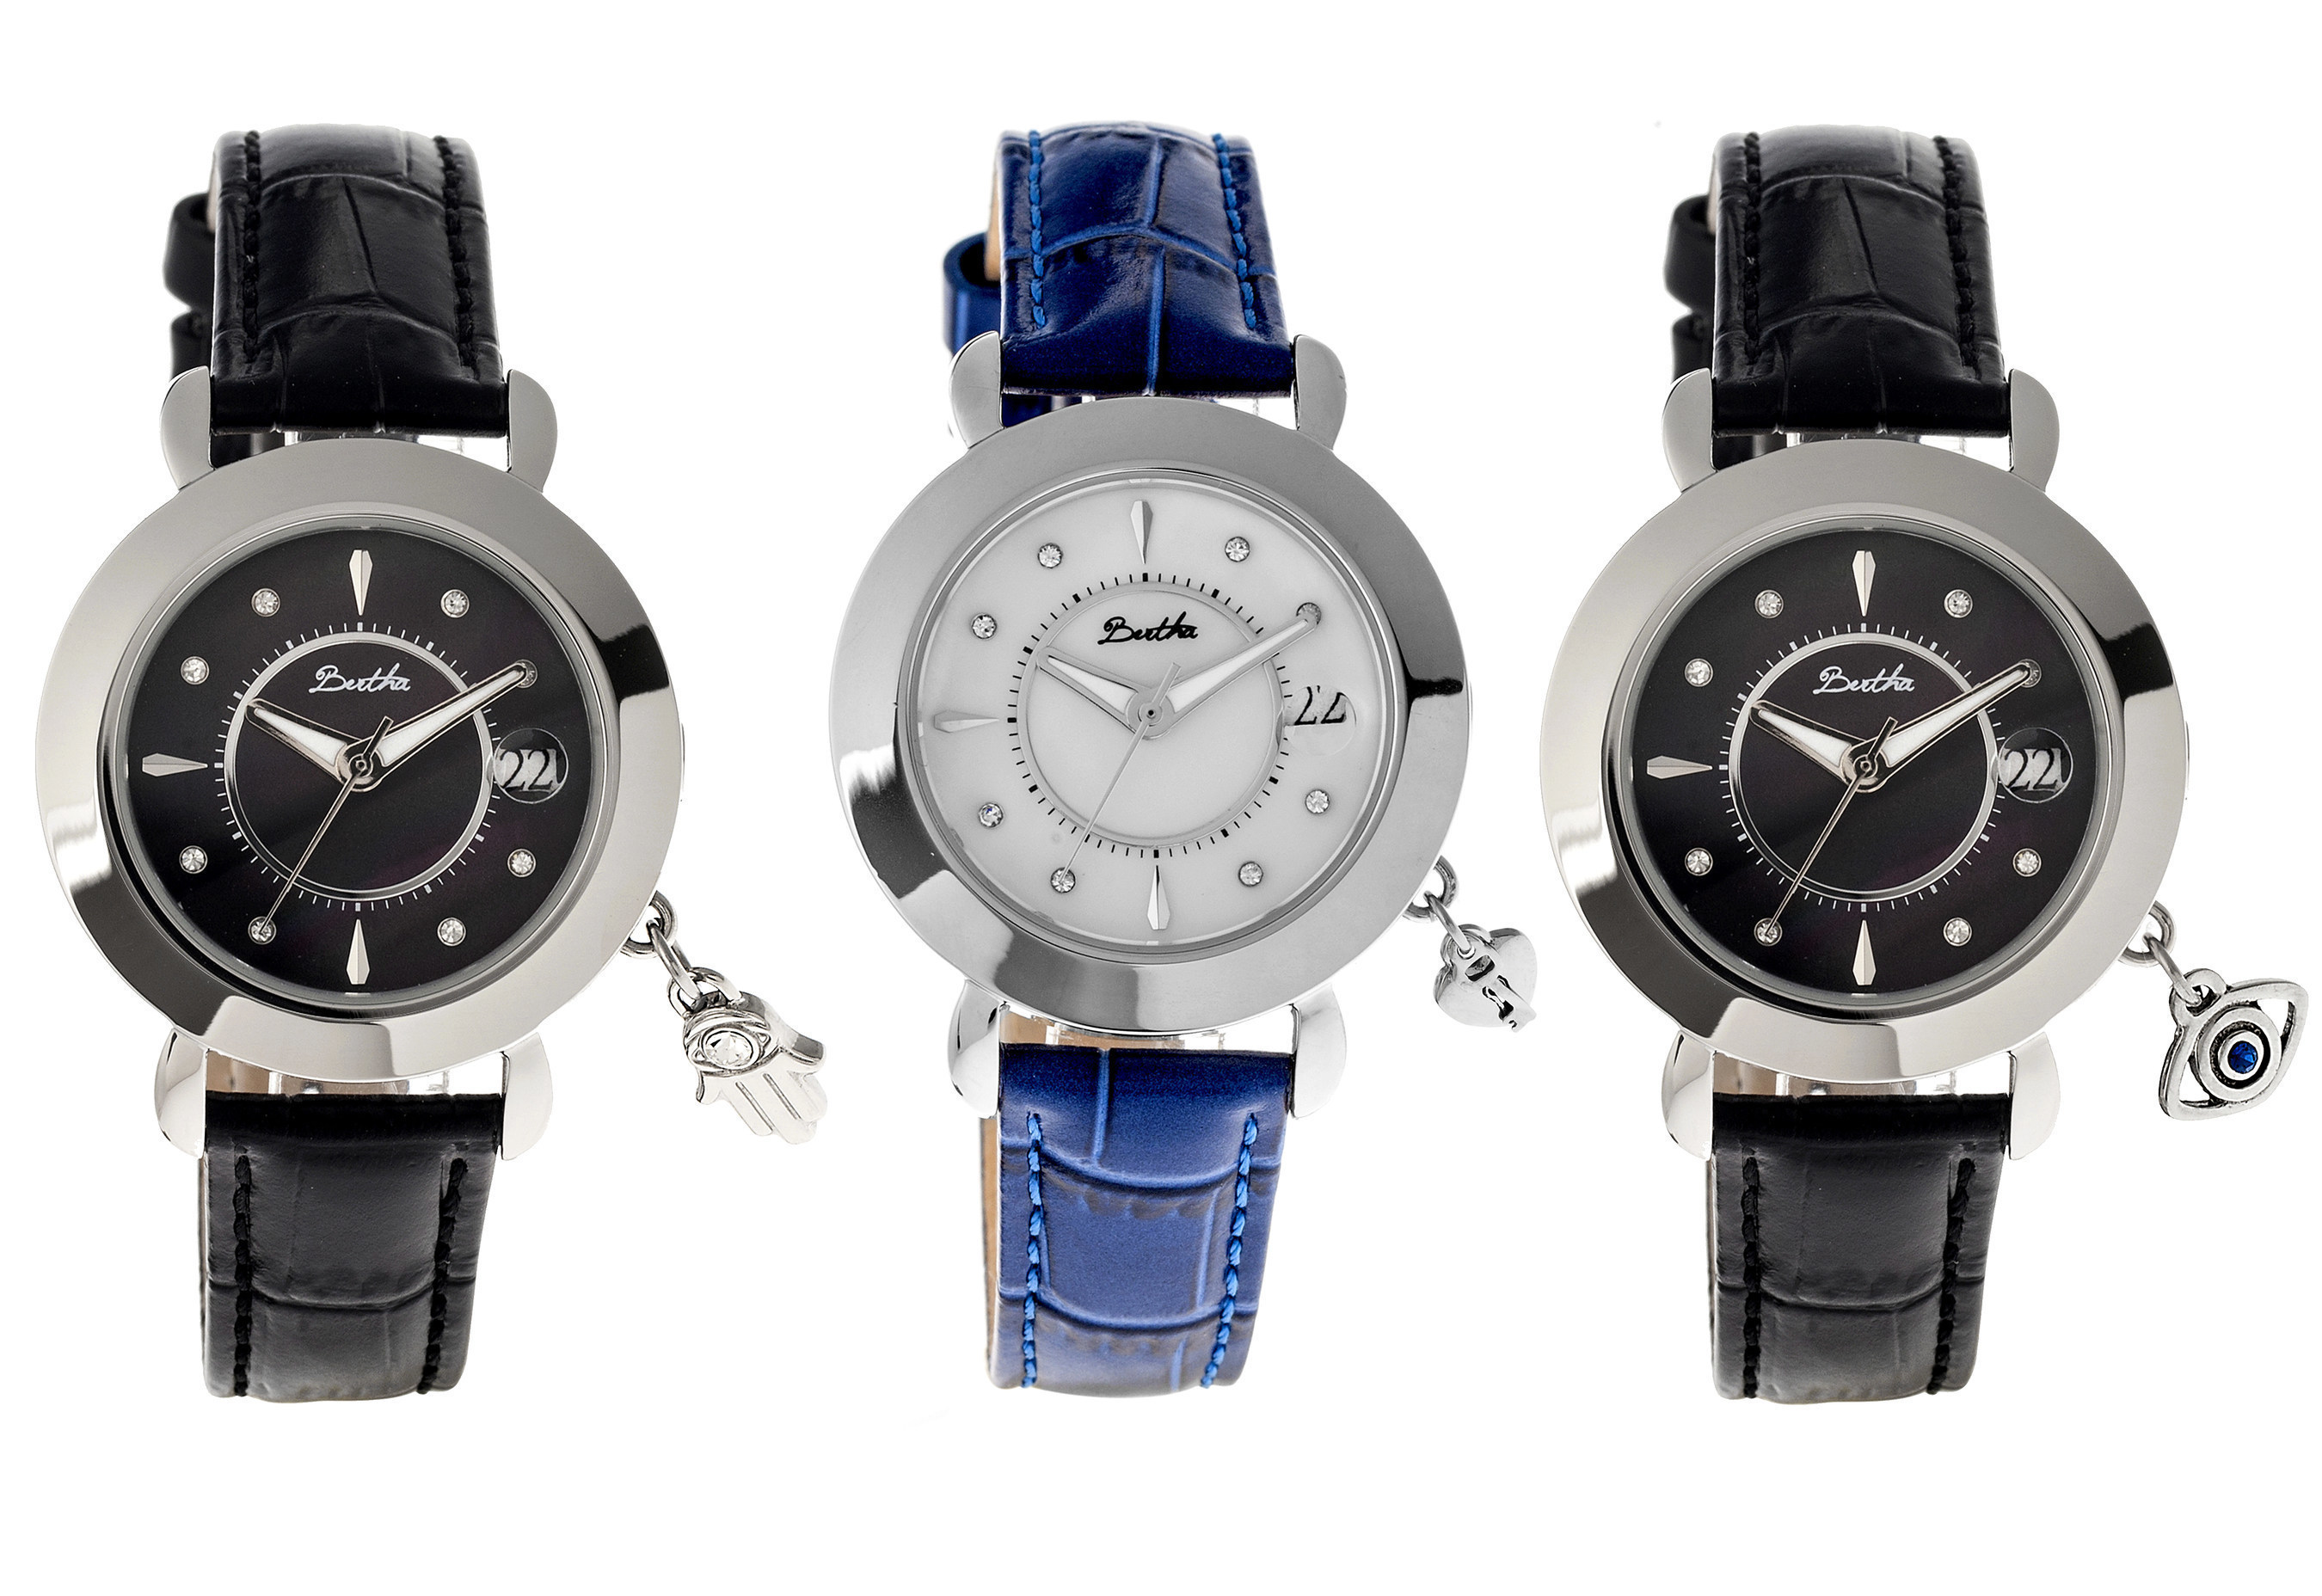 Bertha Watches Introduce Three New Designs to Their Charmed Collection